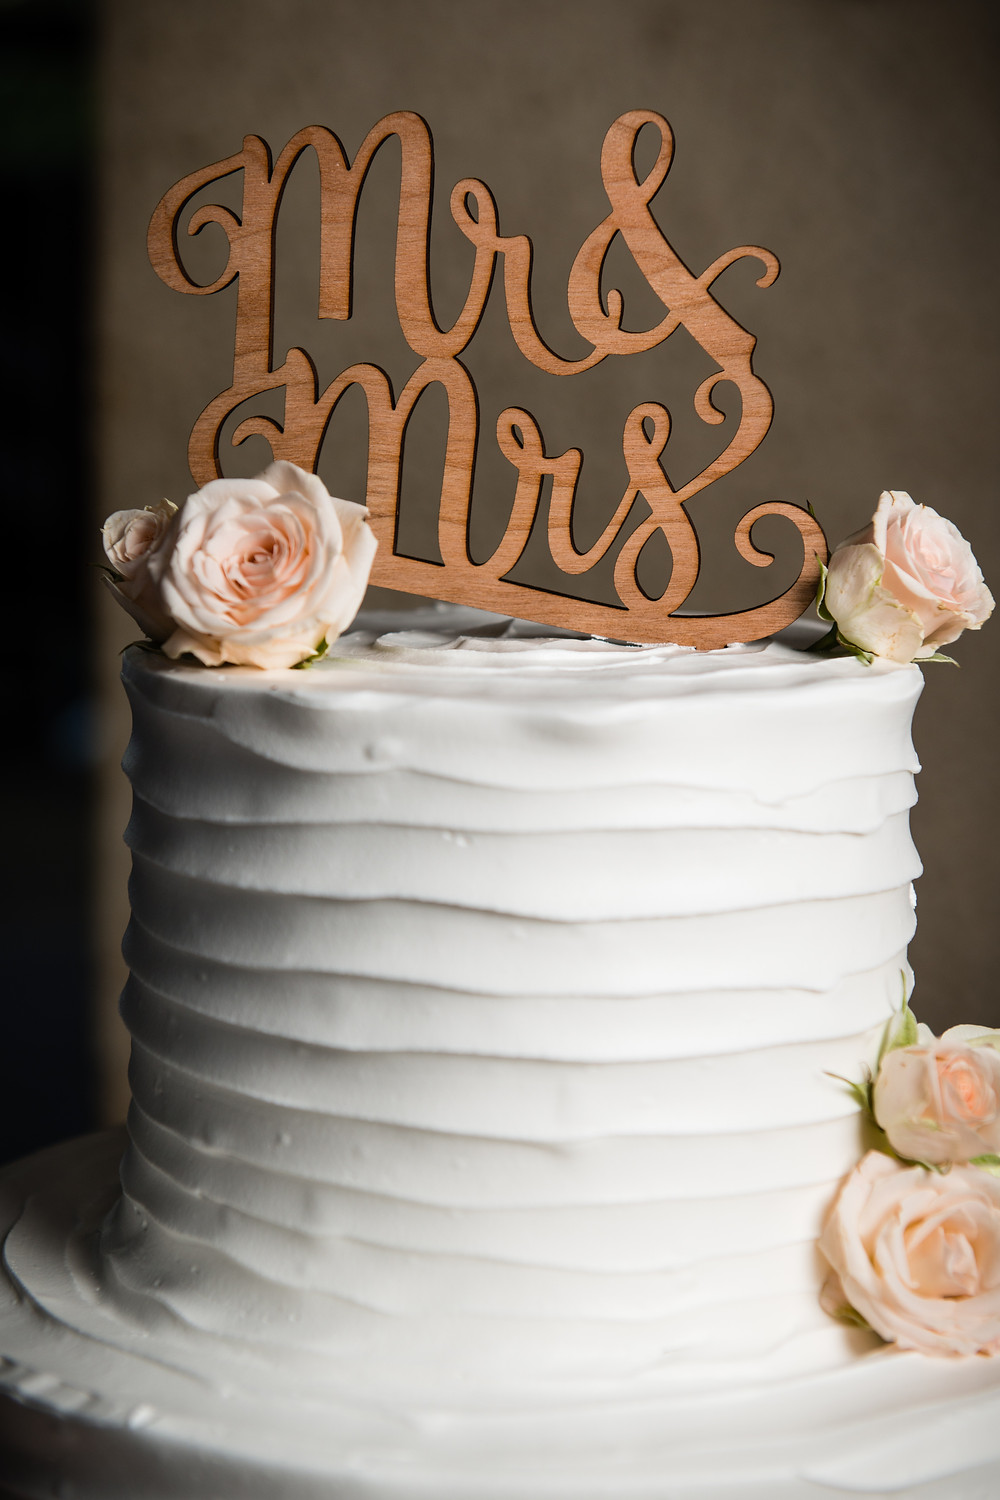 Elegant wedding cake with wooden topper Beckets Oshkosh Wisconsin Wedding Photographer Lanari Photography